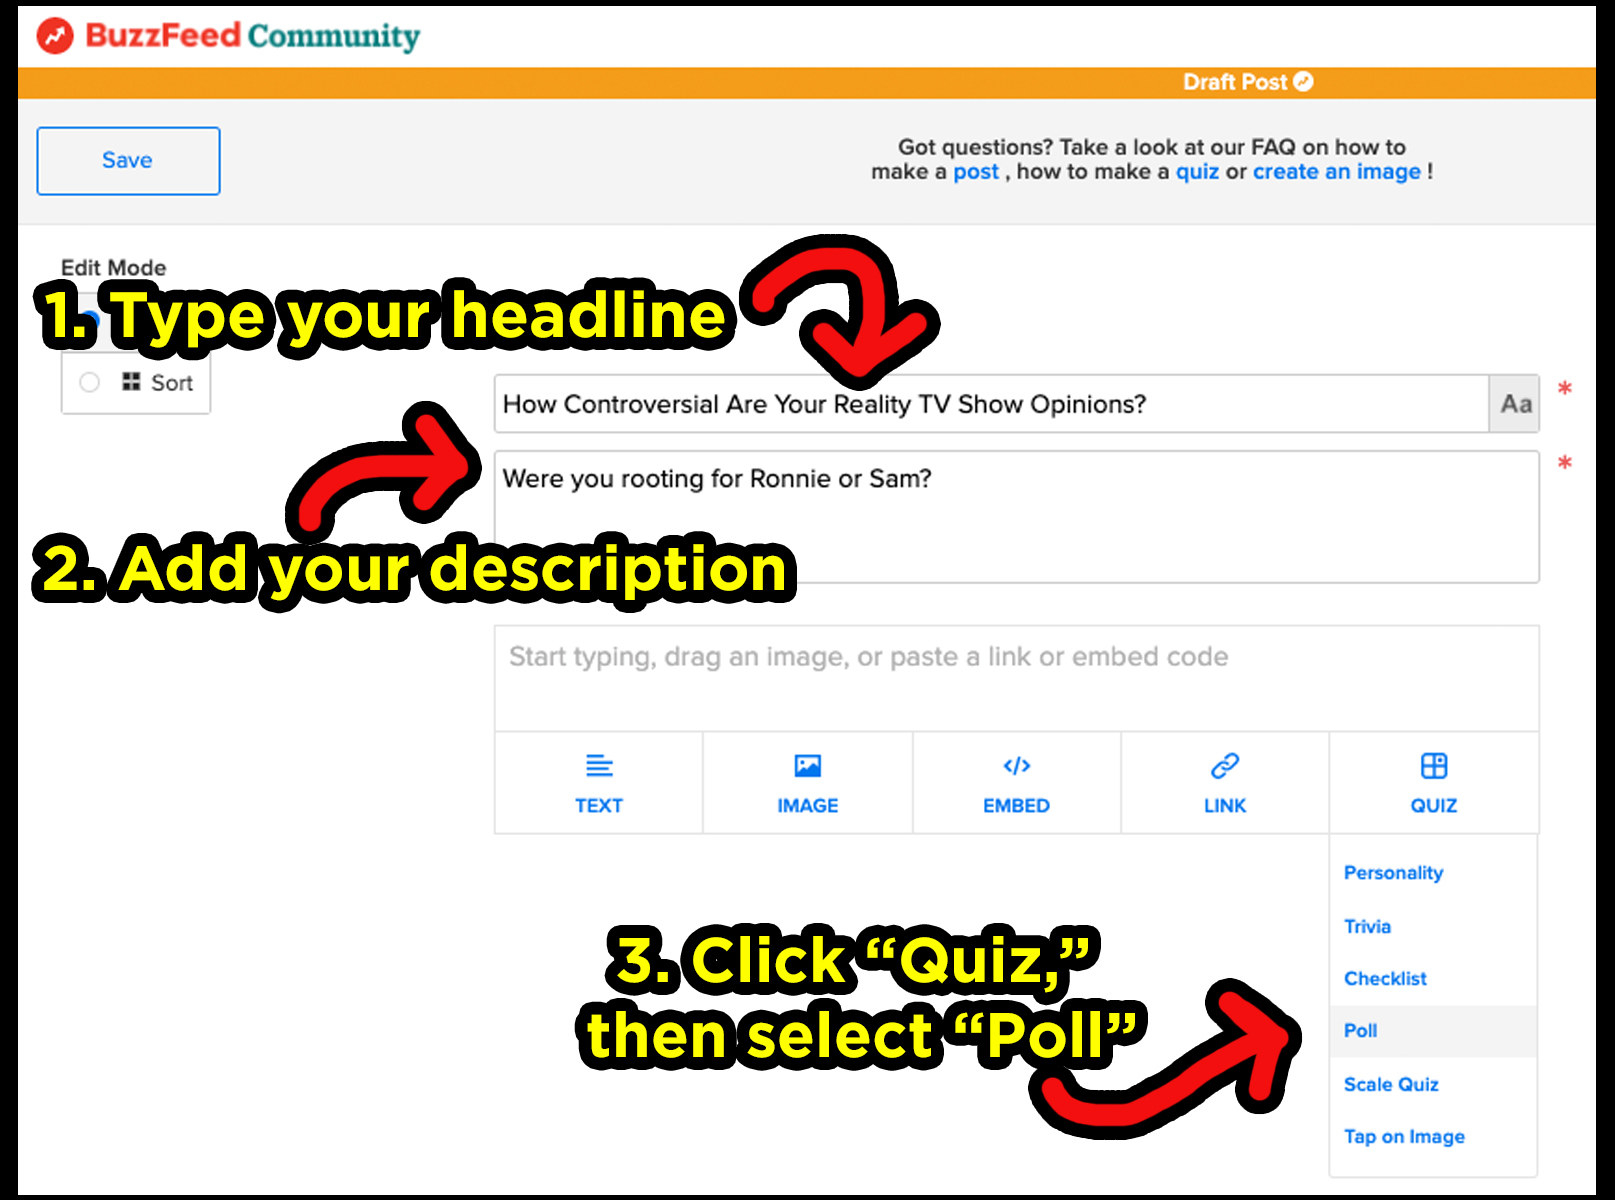 image of buzzfeed content system to show where to type in the headline, description, and where to go to make a poll quiz